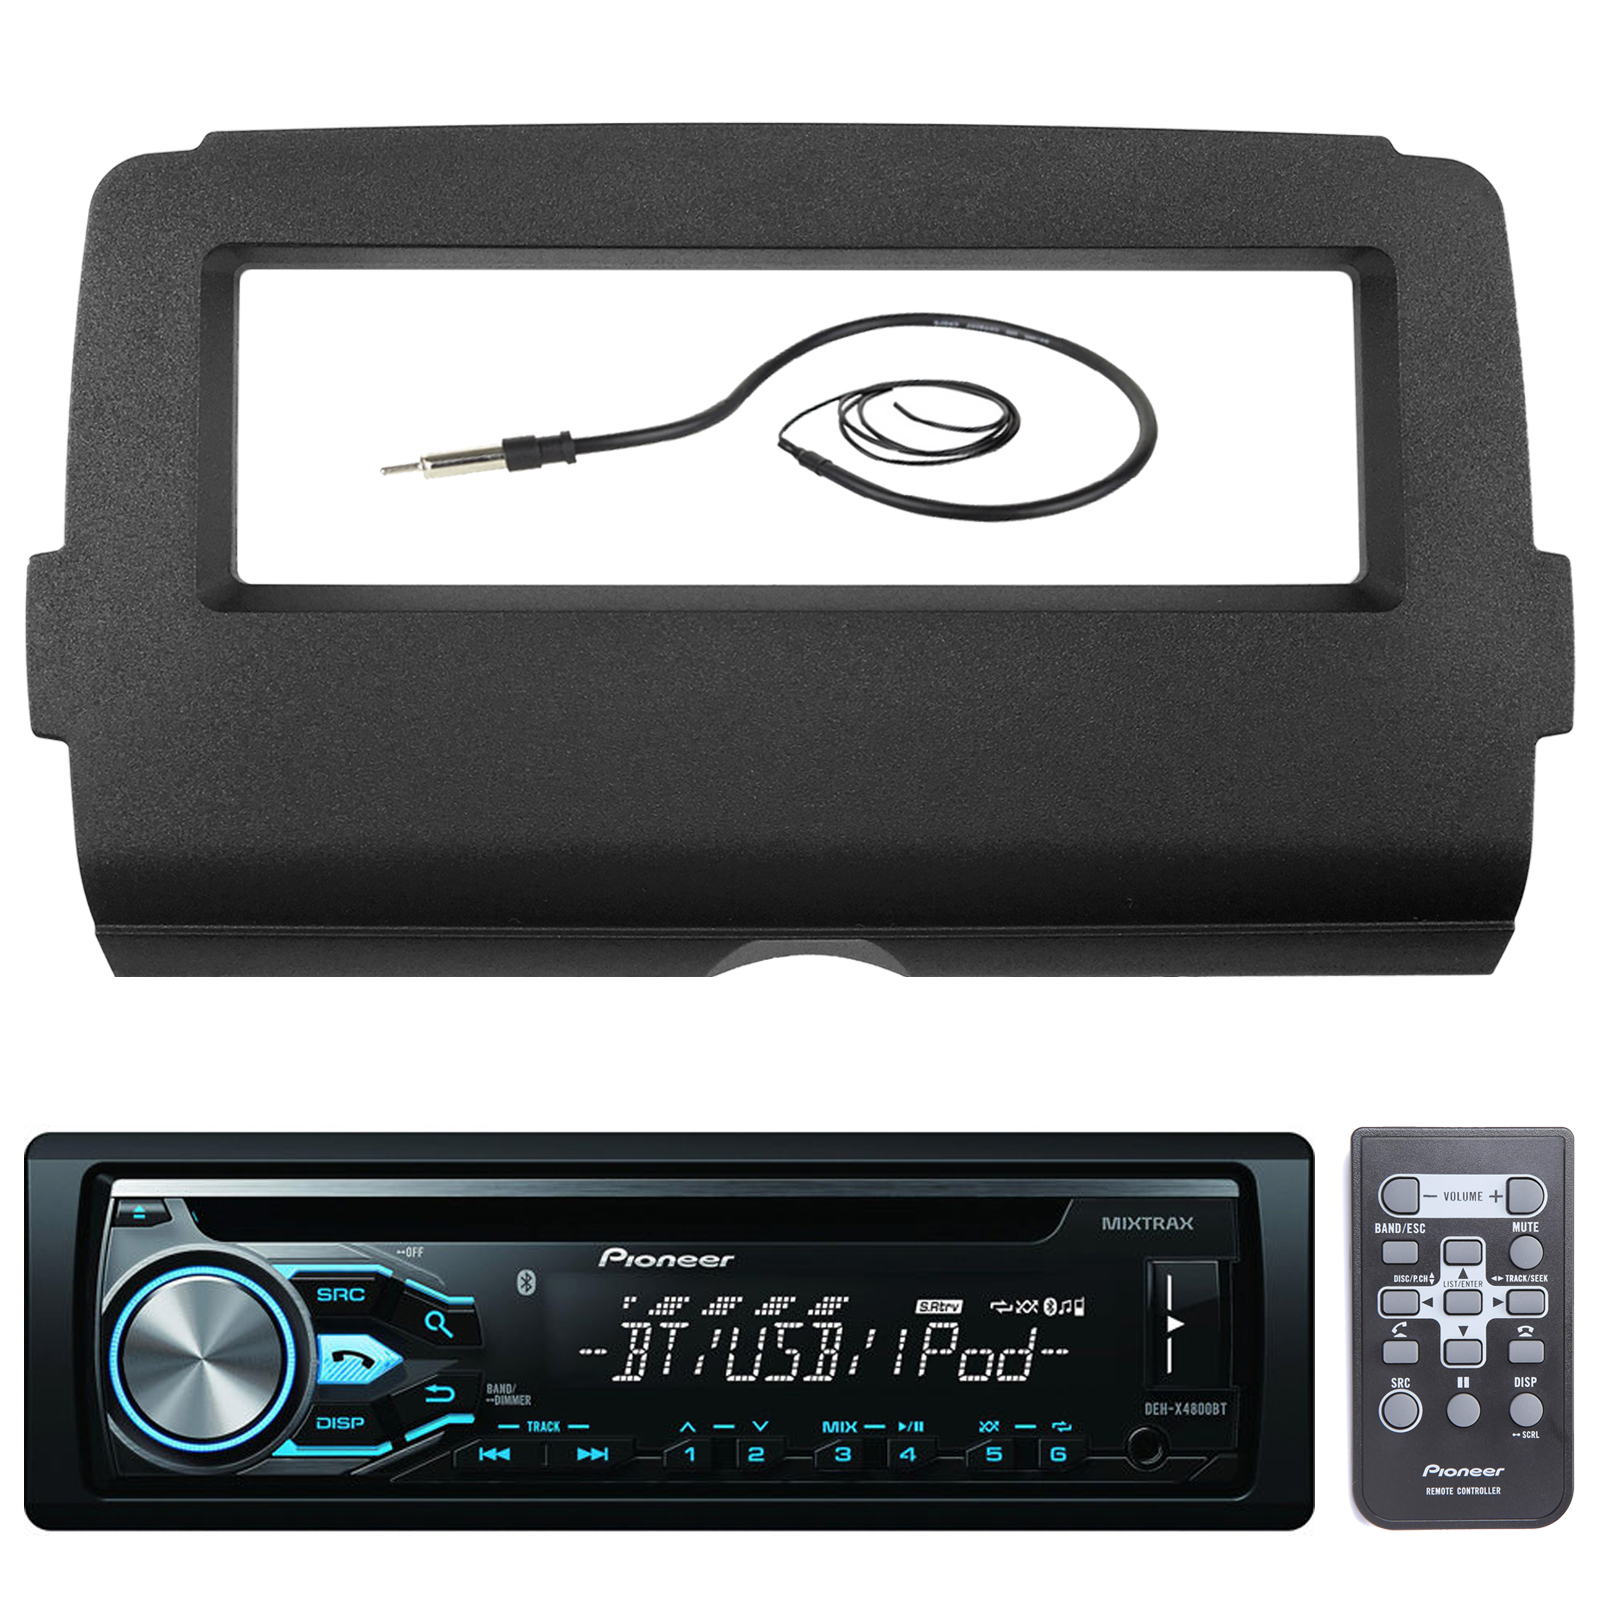 "Pioneer DEH-X4800BT Marine Bluetooth Radio USB AUX CD MP3 WMA Audio Receiver Bundle Combo With Scosche Installation Dash Kit for 2014 and Up Harley Motorcycle, Enrock 22"" Radio Antenna"